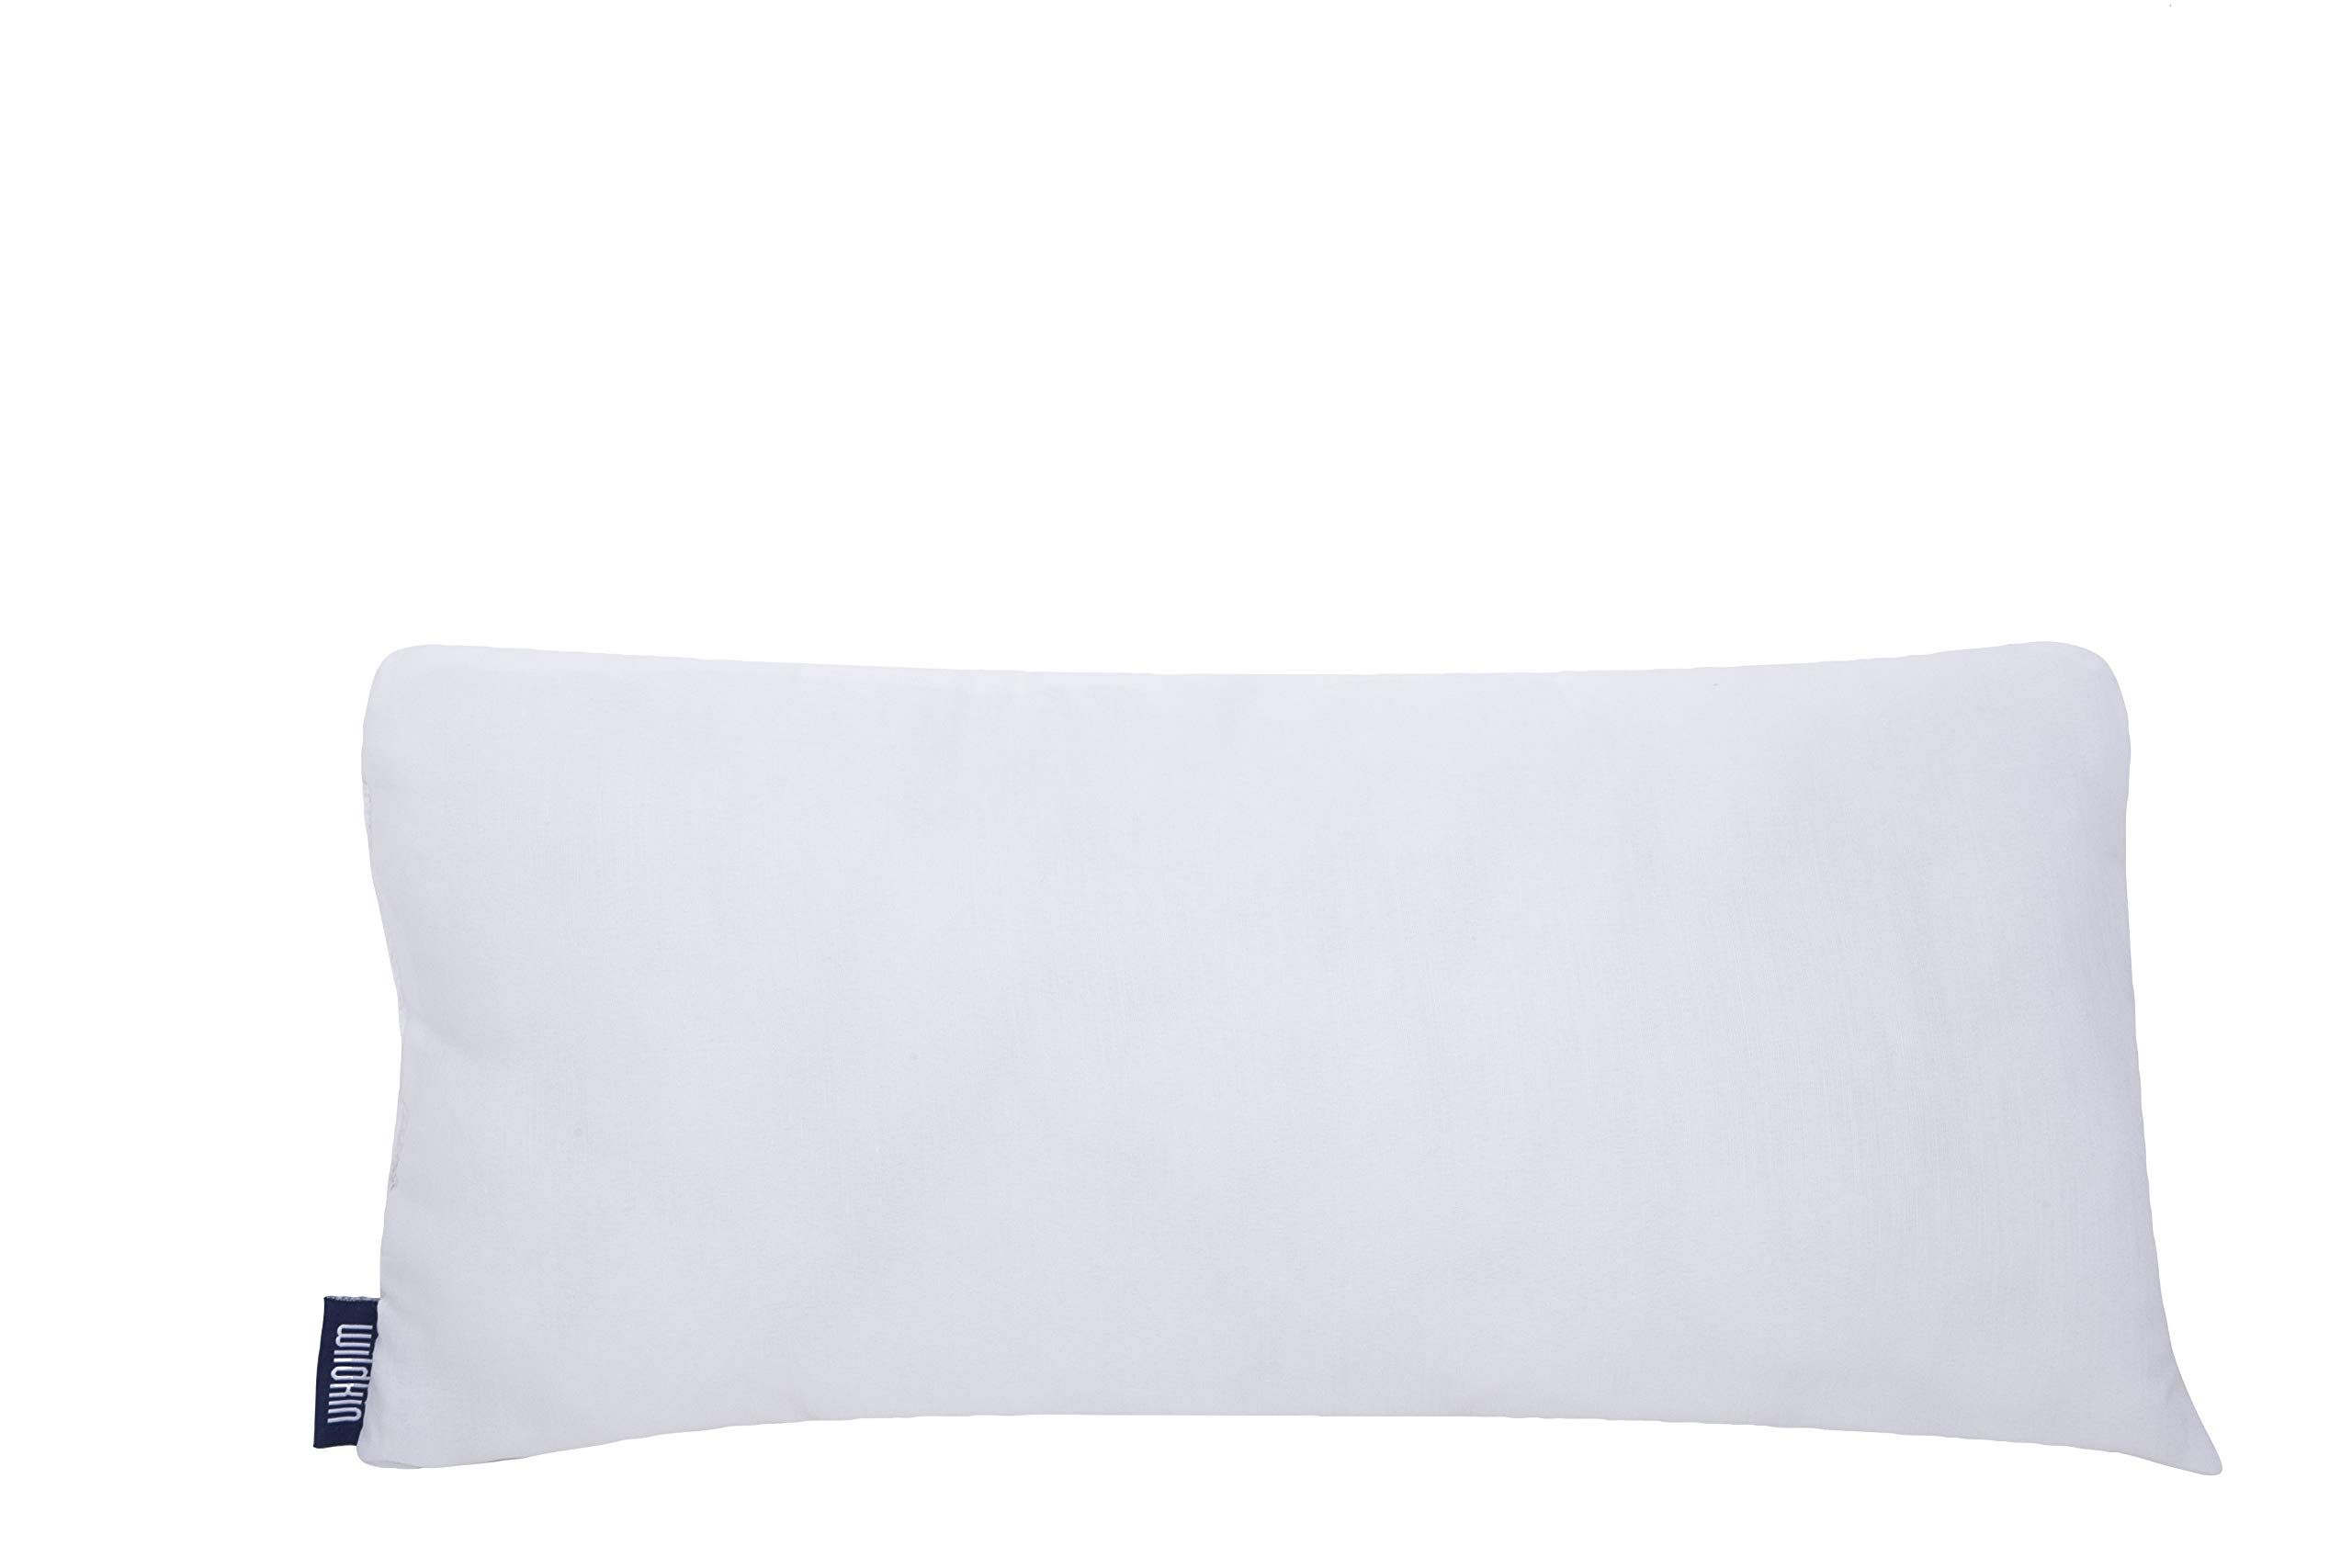 Wildkin Original Nap Mat Pillow, Replacement Pillow for Original, Cotton, and Microfiber Nap Mats, Ultra Plush Cotton Blend Fill, Measures 18 x 3 x 8 Inches - White